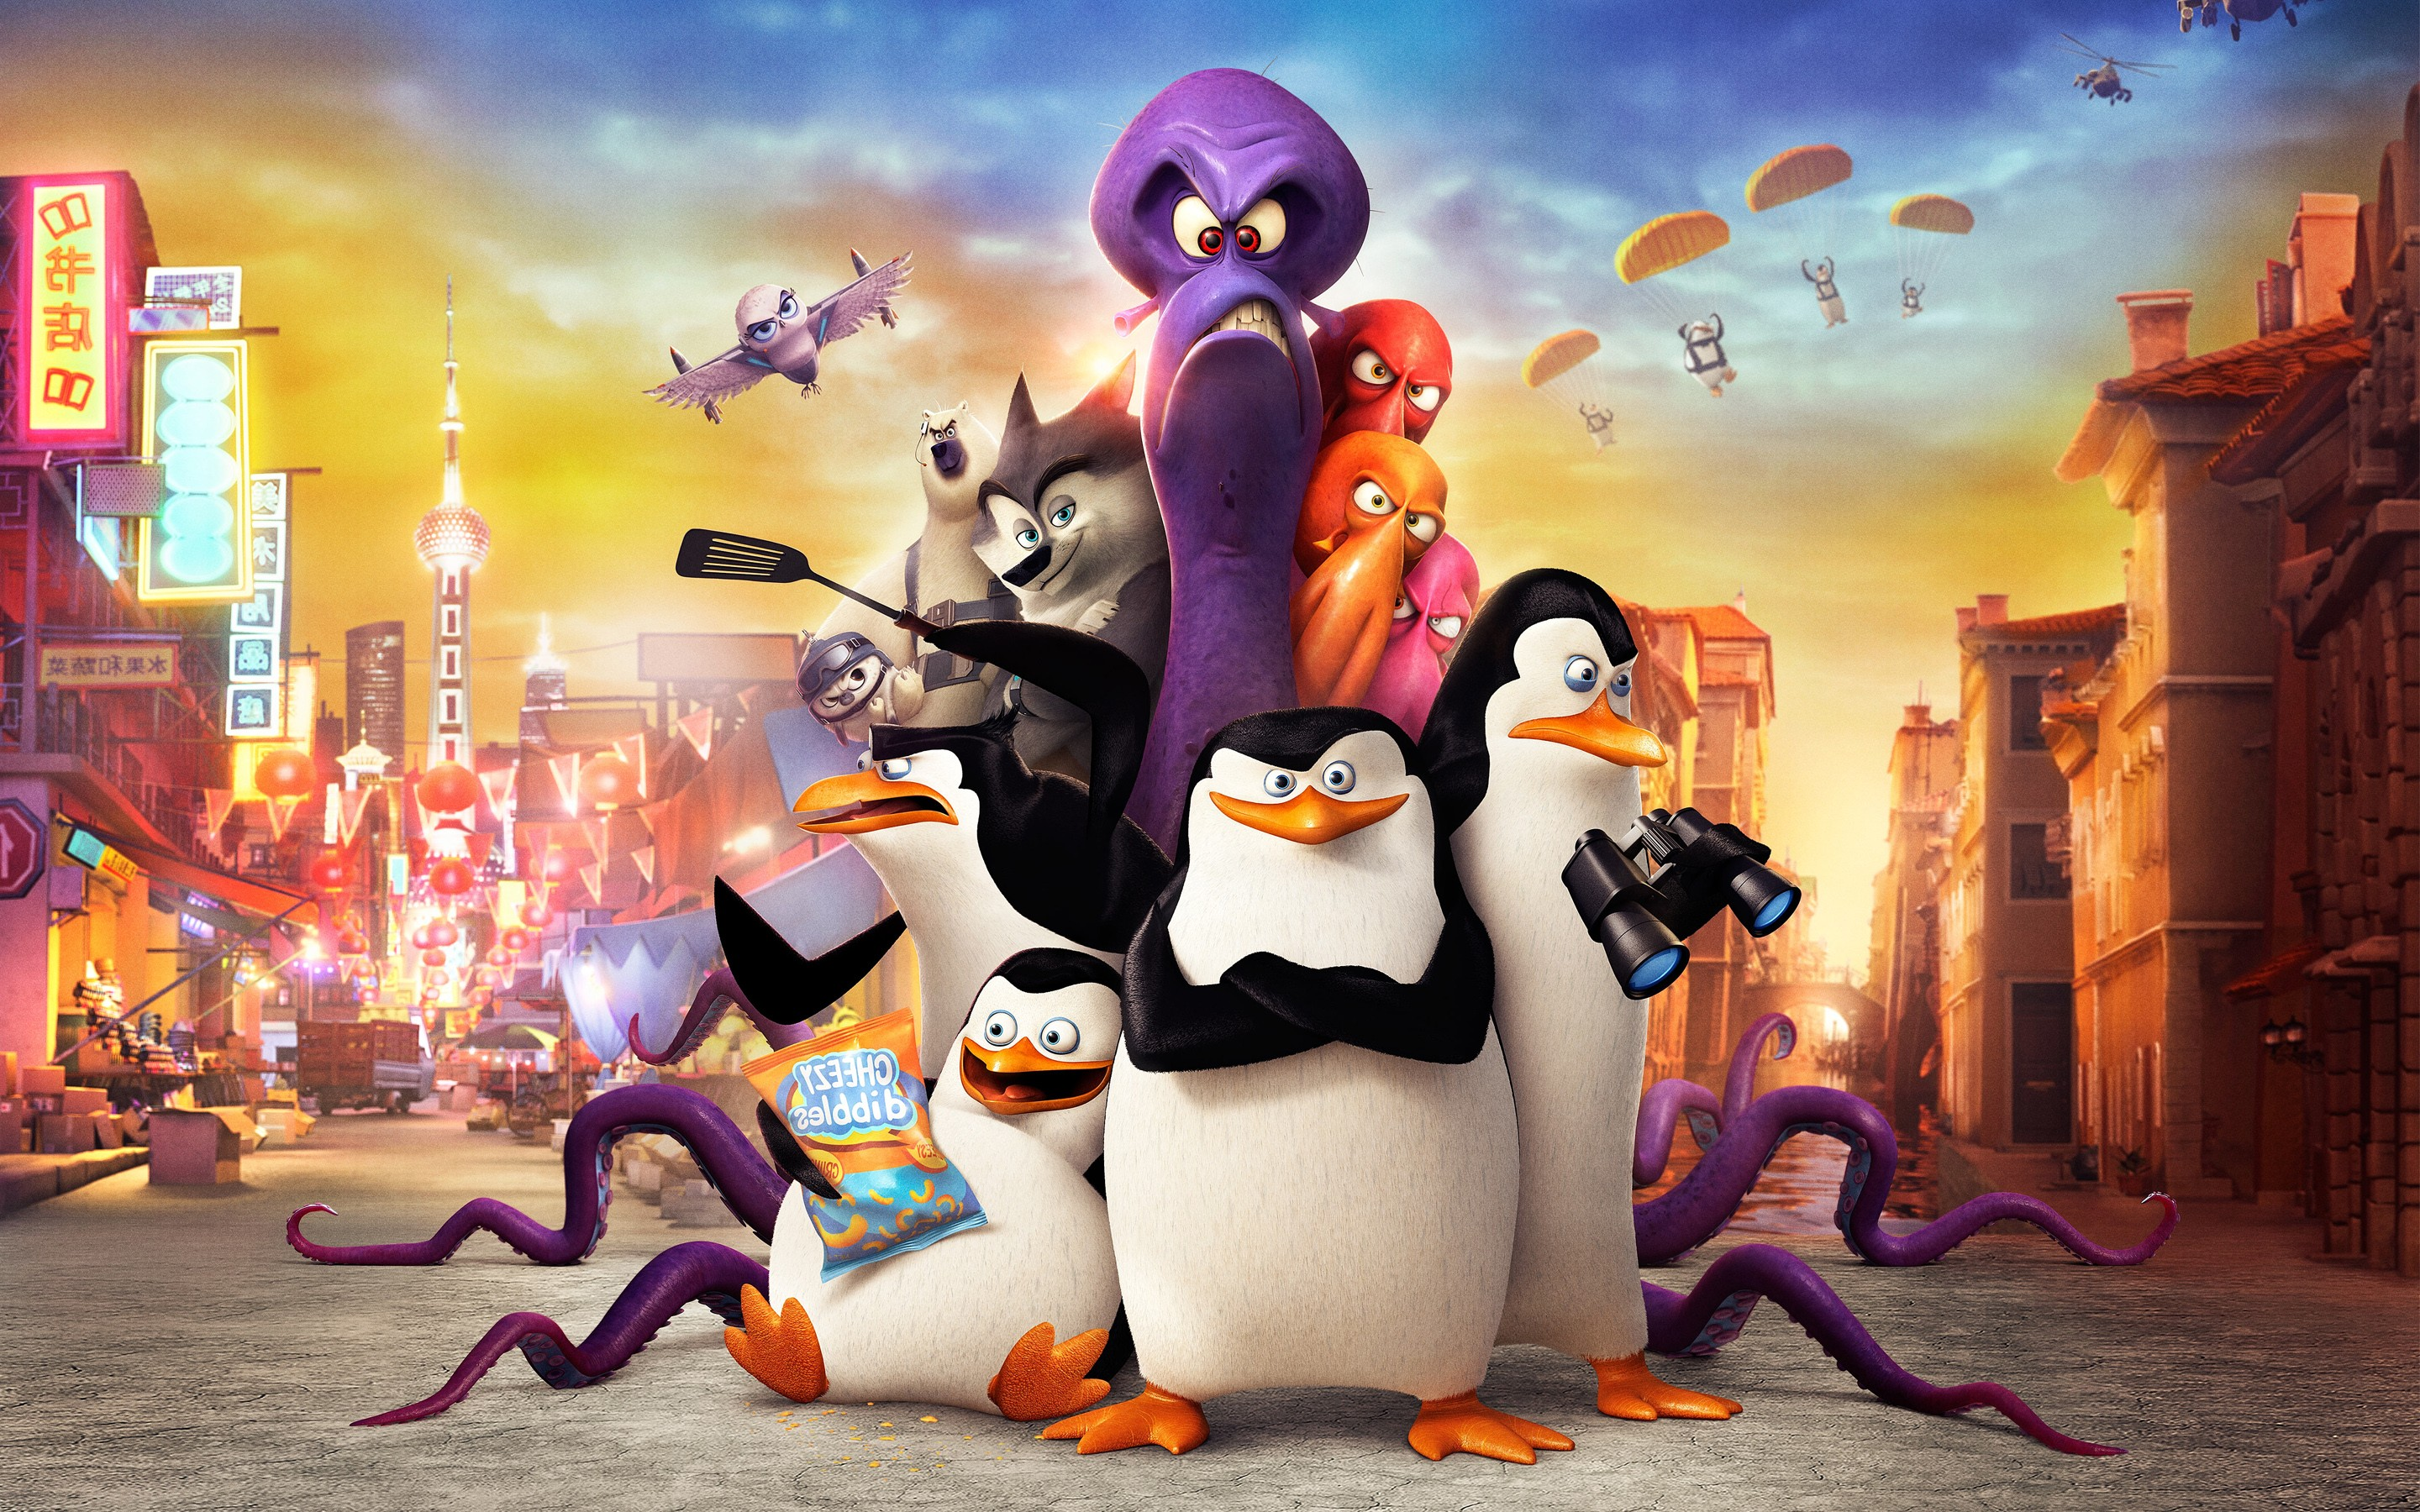 penguins of madagascar movie   movies hd 4k wallpapers